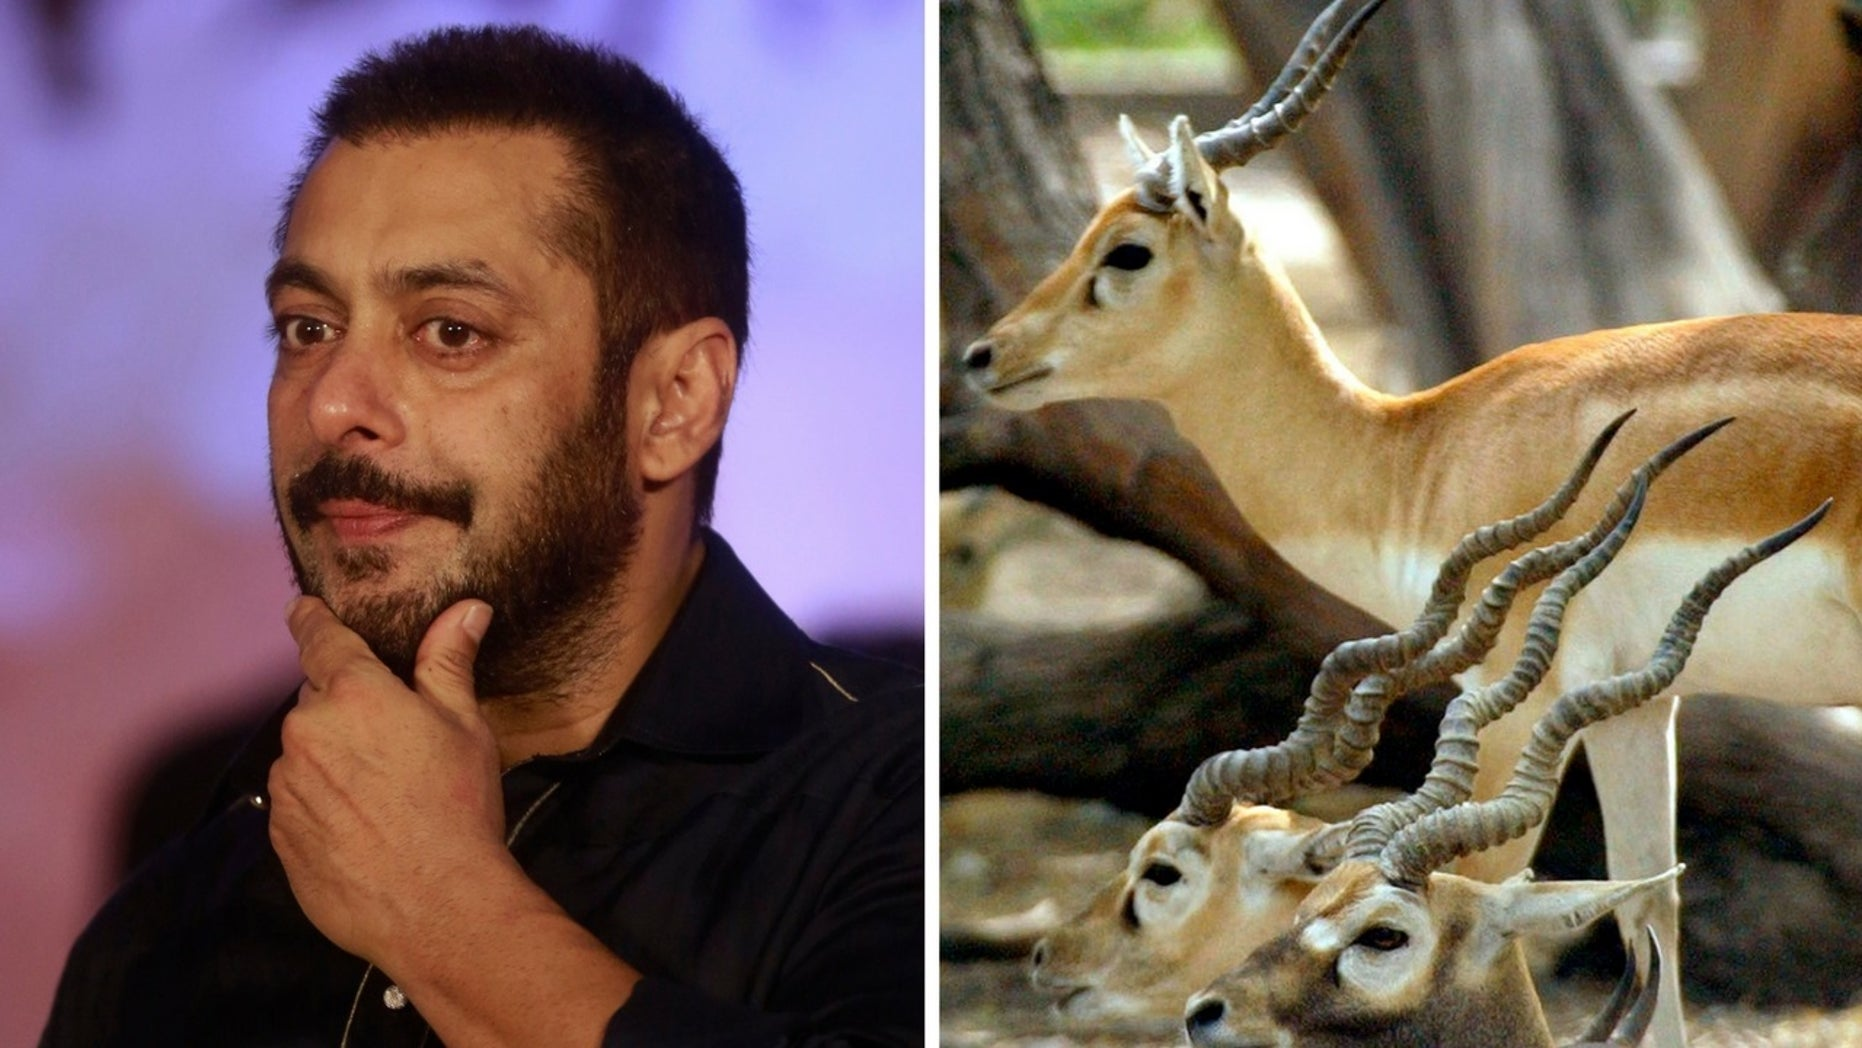 Salman Khan was sentenced to five years in prison for poaching rare antelope 20 years ago.